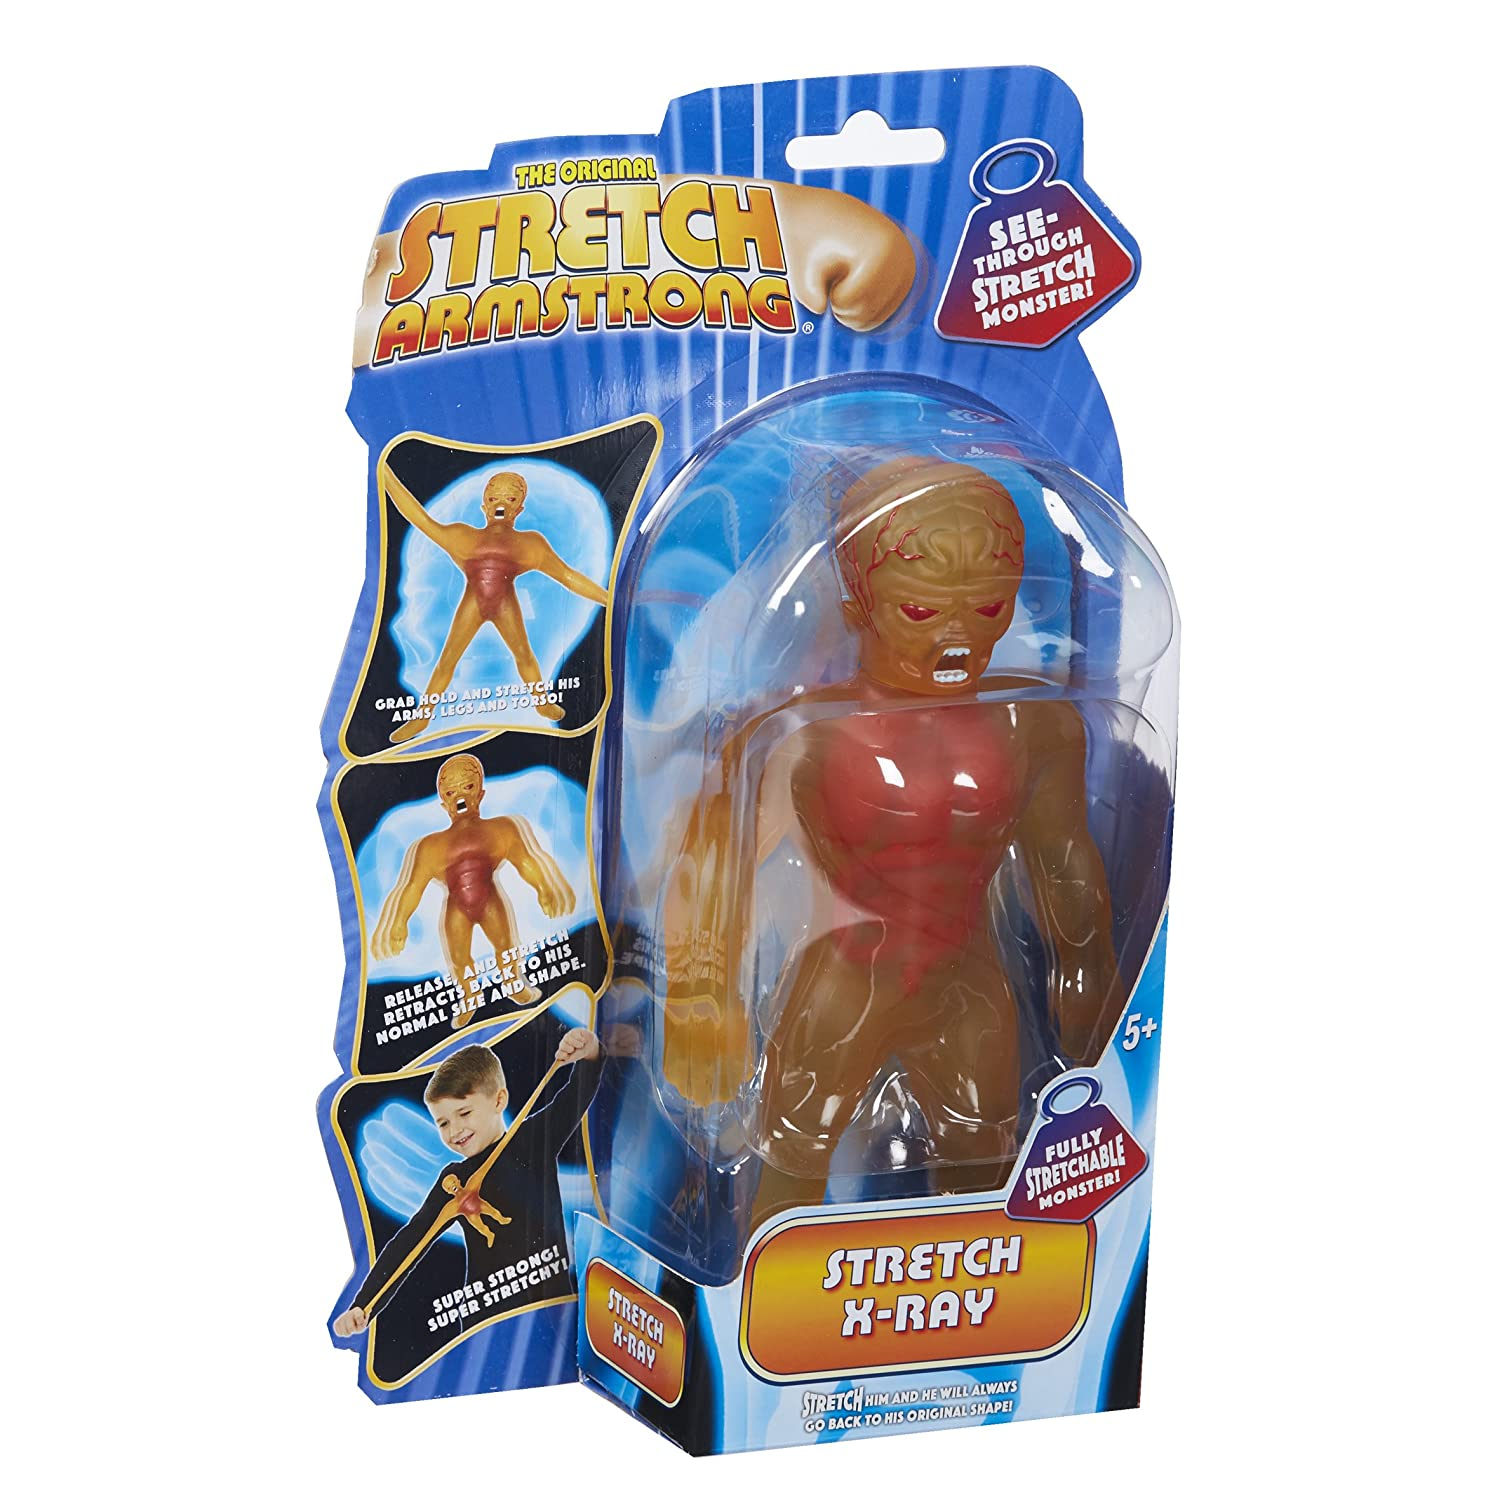 Mini Stretch Armstrong SONIC THE HEDGEHOG